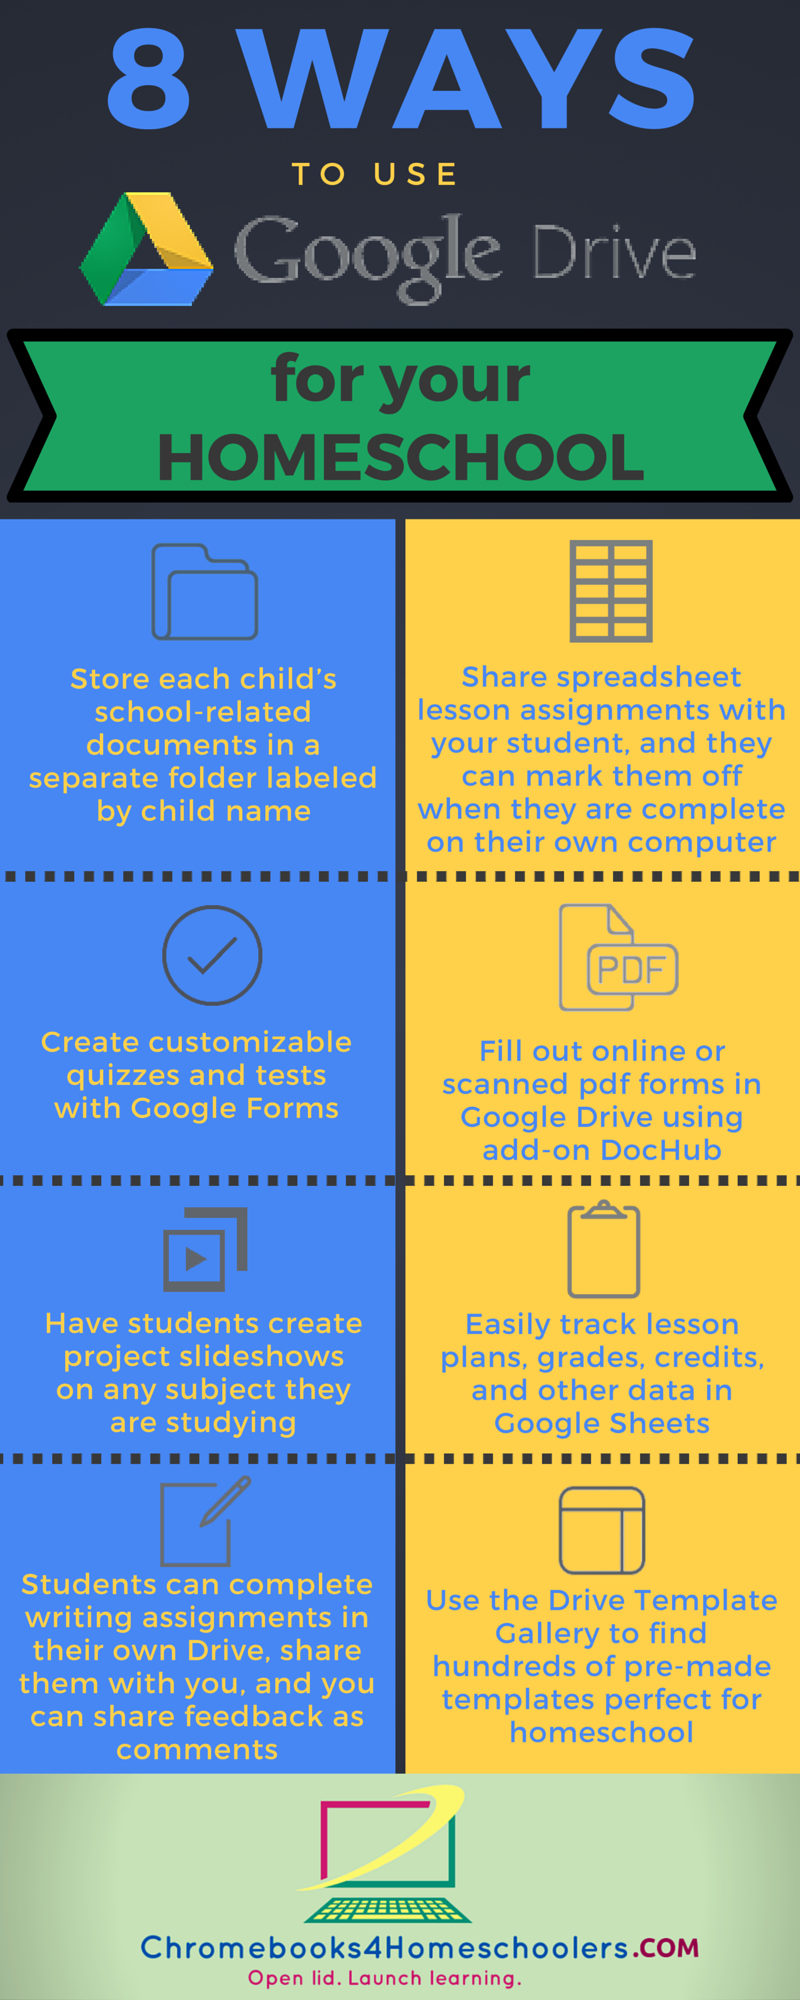 8 Ways Google Drive Homeschool Infographic